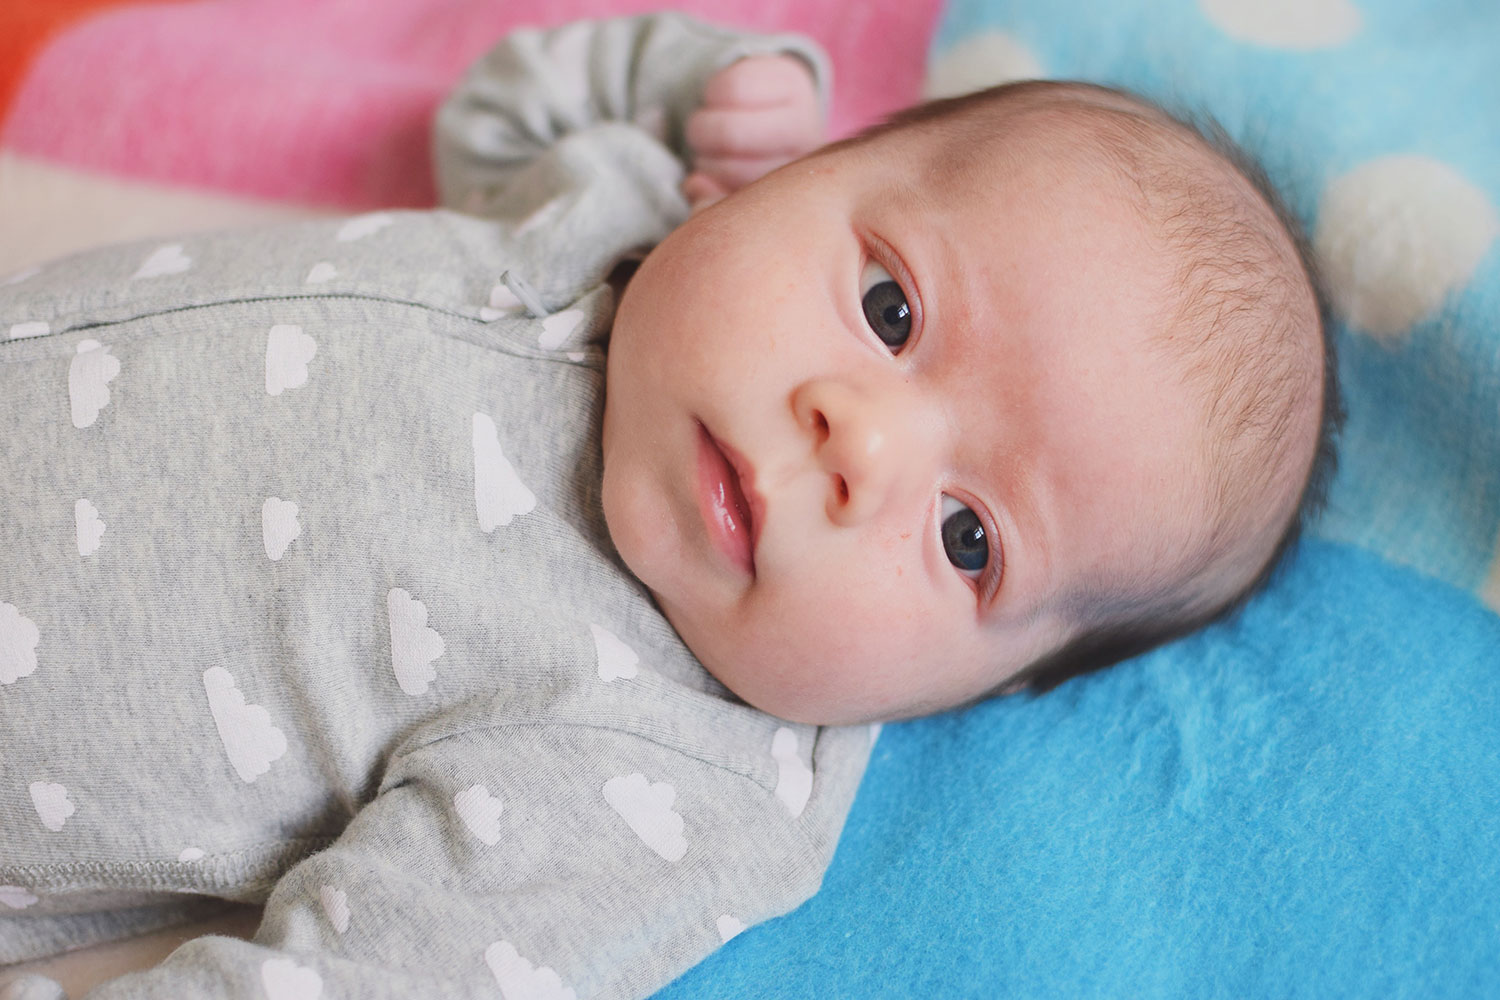 Baby Jesse Blue at 2 months old - Newborn wearing starry sleepsuit laying asleep on Primark patterned geometric duvet